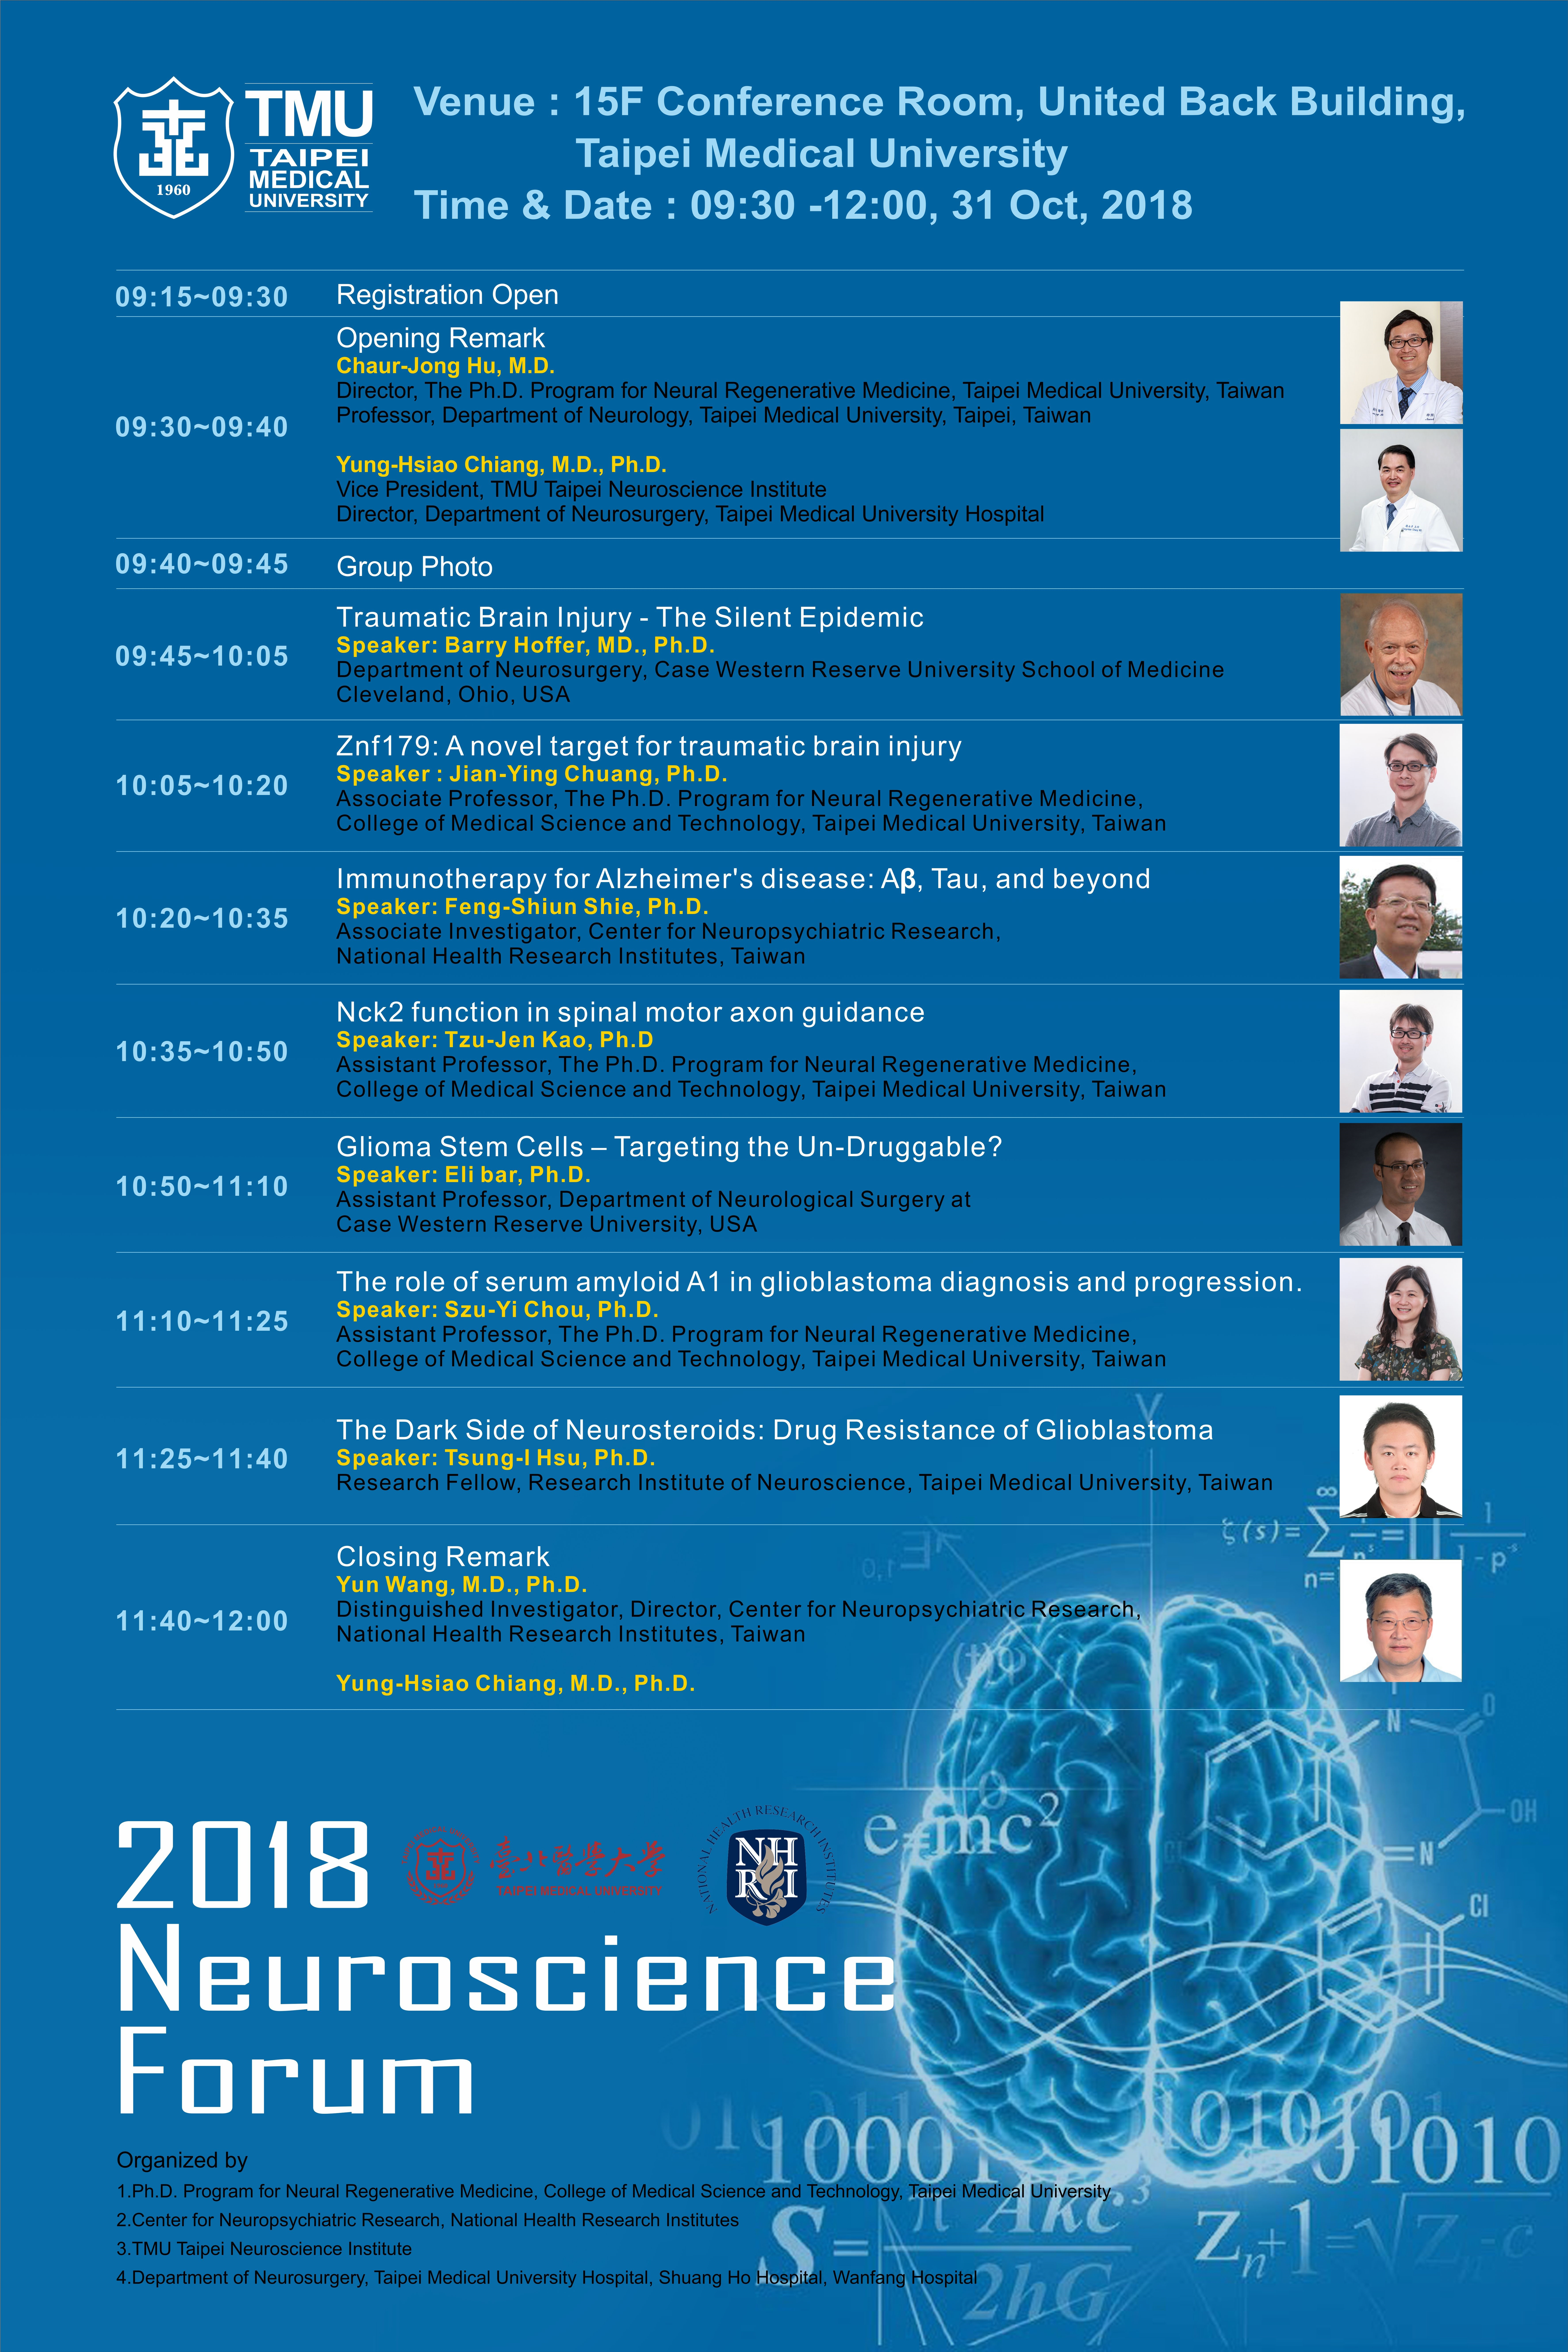 2018 Neuroscience Forum